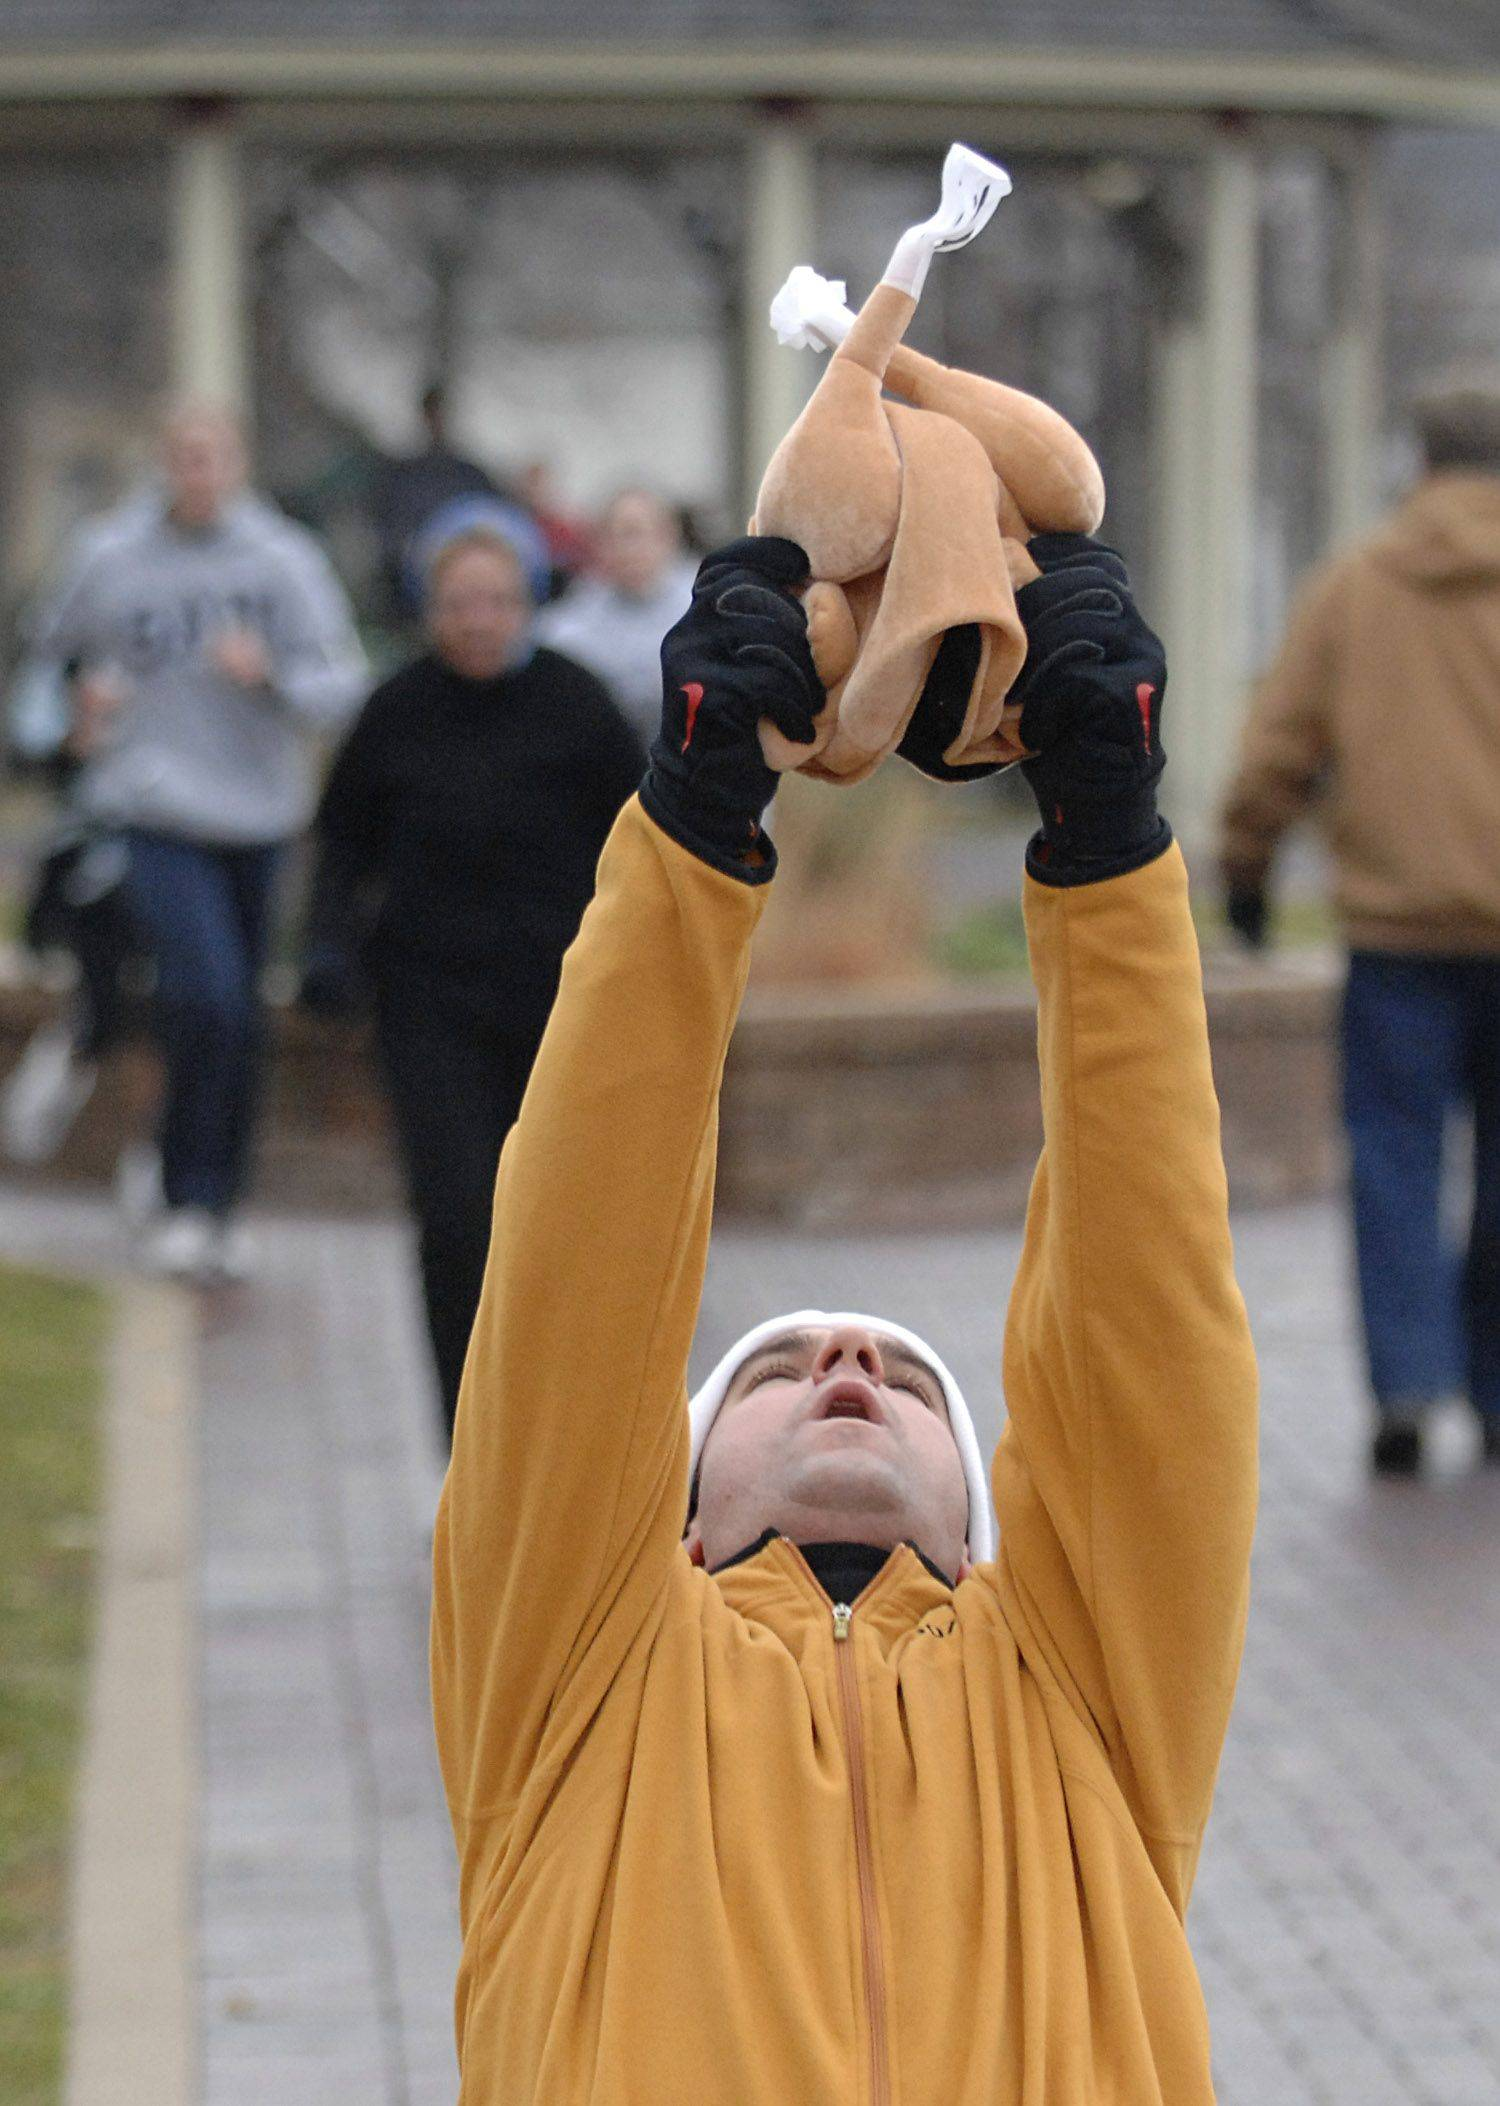 Phillip Kondos of Elgin falls to his knees and hoists his turkey hat into the air at the finish line of the Thanks A Lot! Turkey Trot 5K Fun Run and Walk in the Gifford Park neighborhood in Elgin on Thanksgiving Day. Kondos, his wife, Chelsea, and her family all took part in the event before heading back to their house for Thanksgiving dinner.